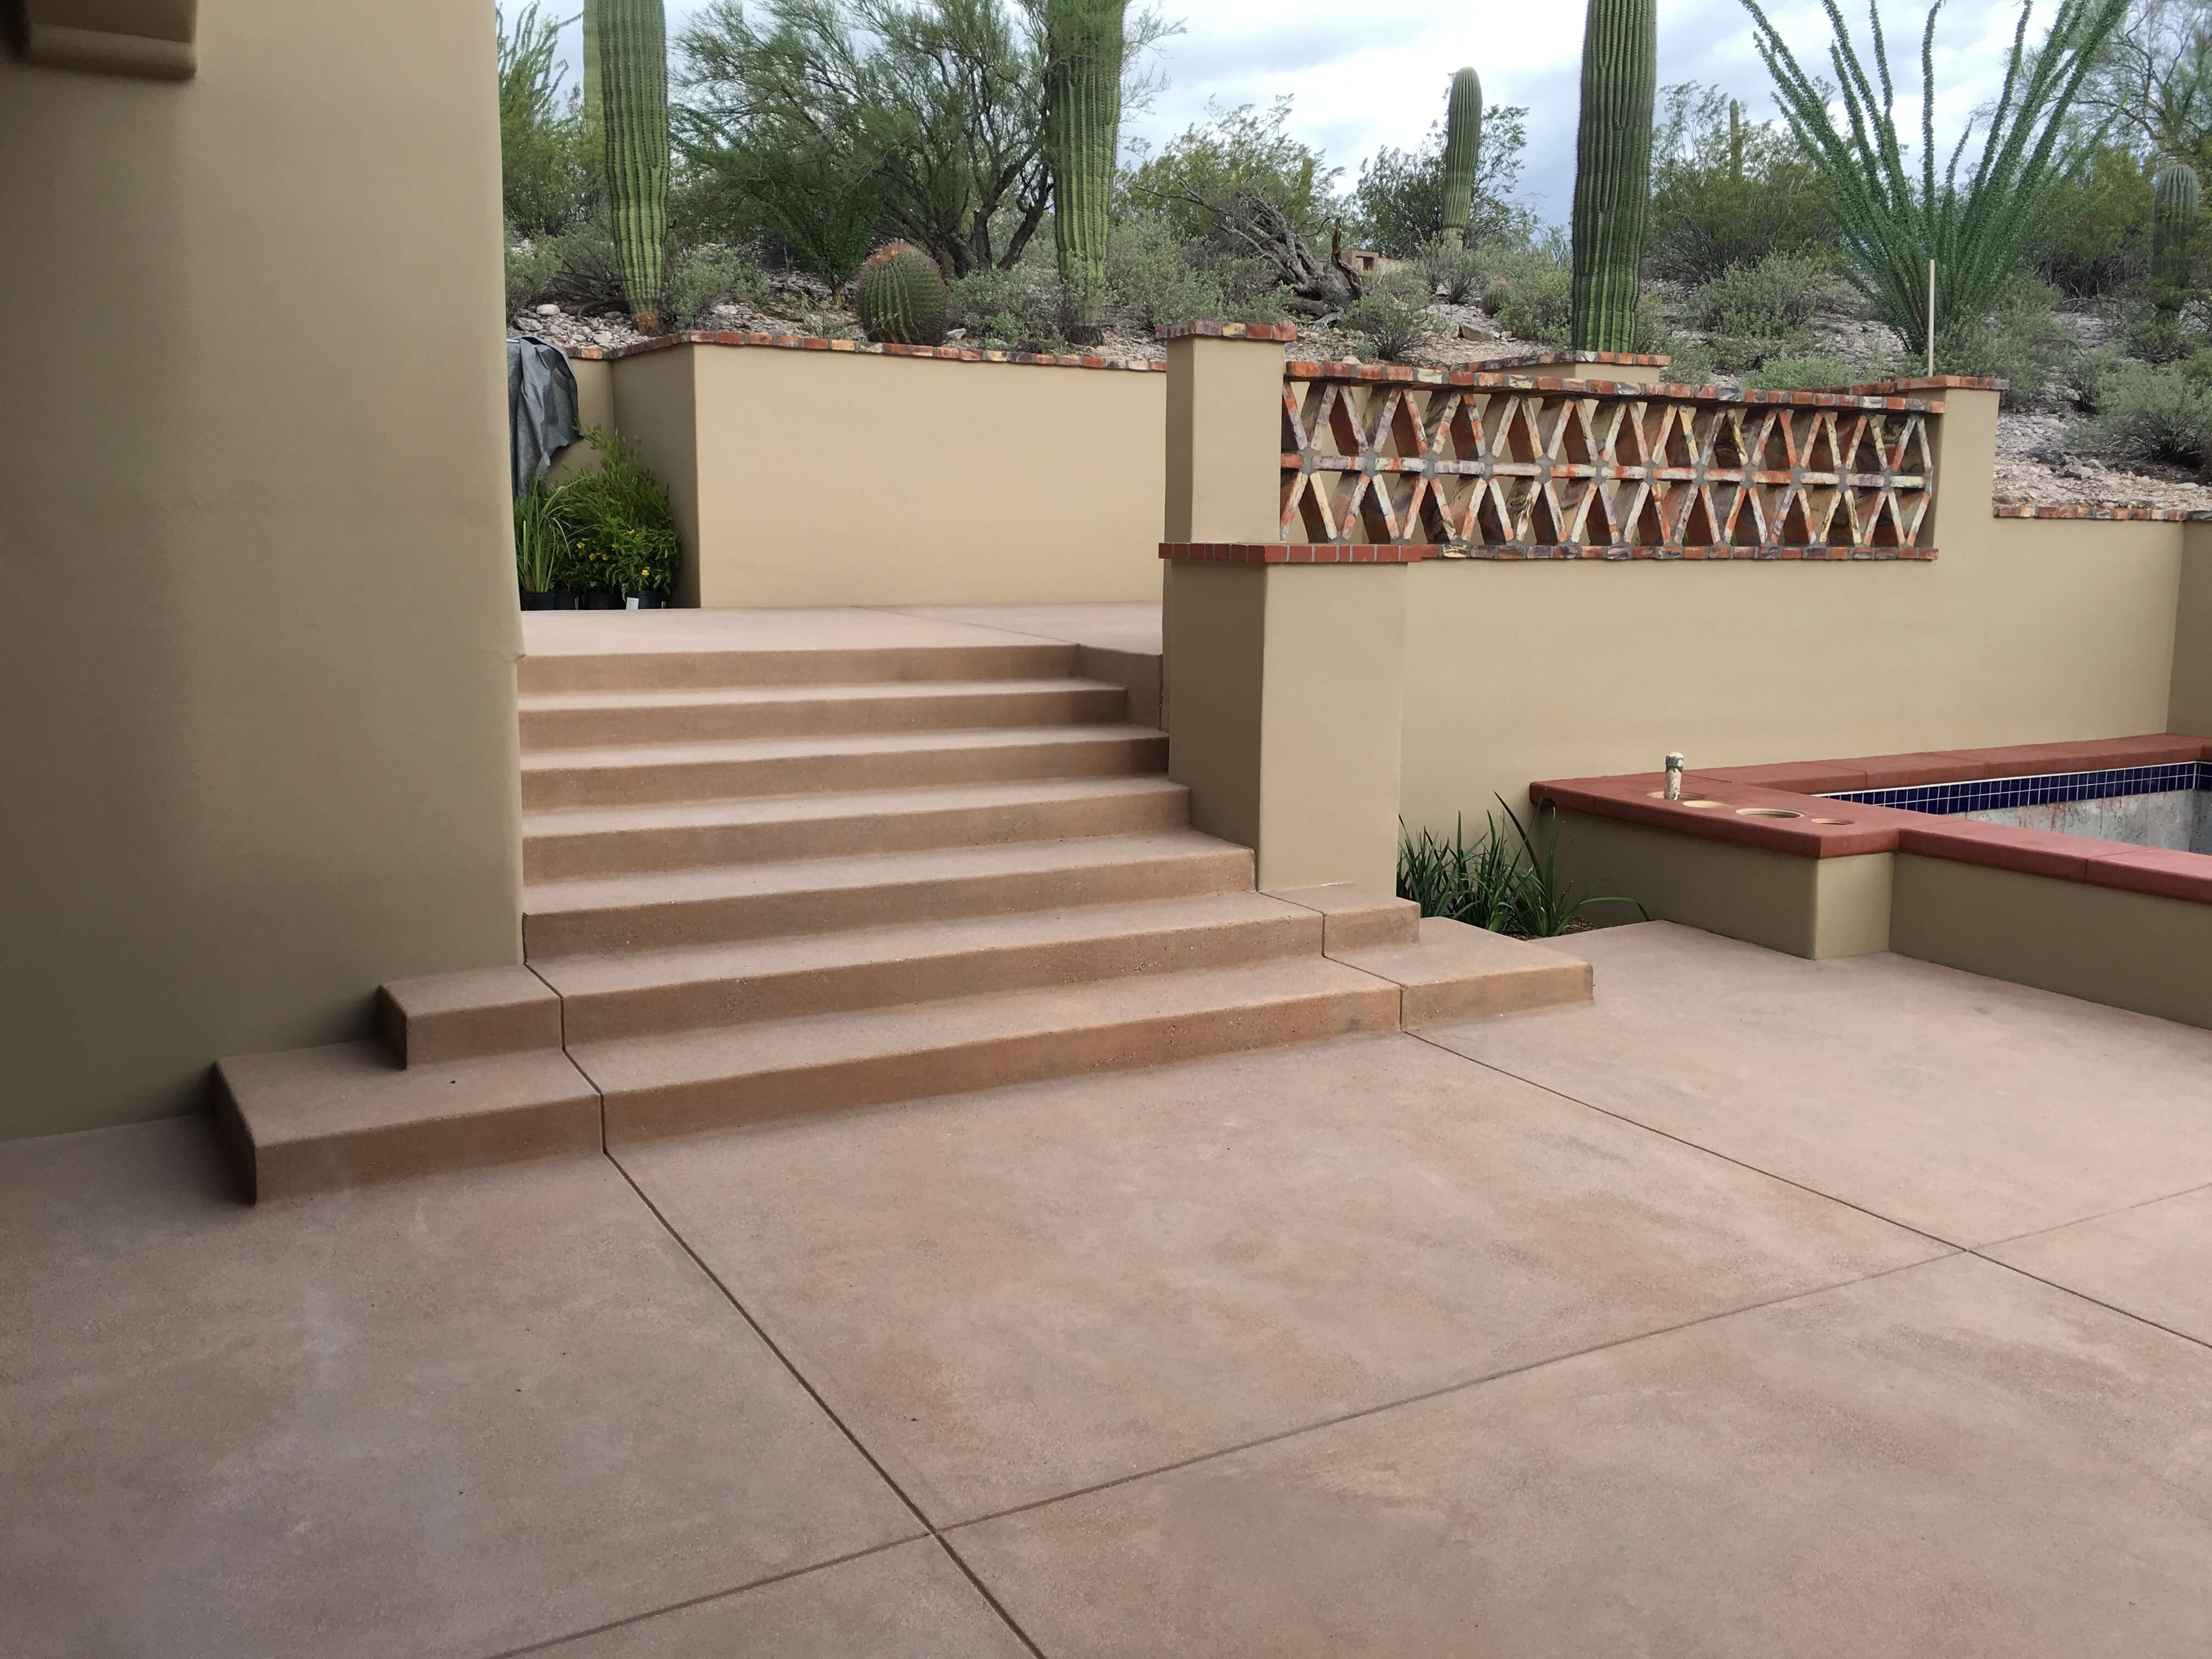 Colored concrete patio and steps